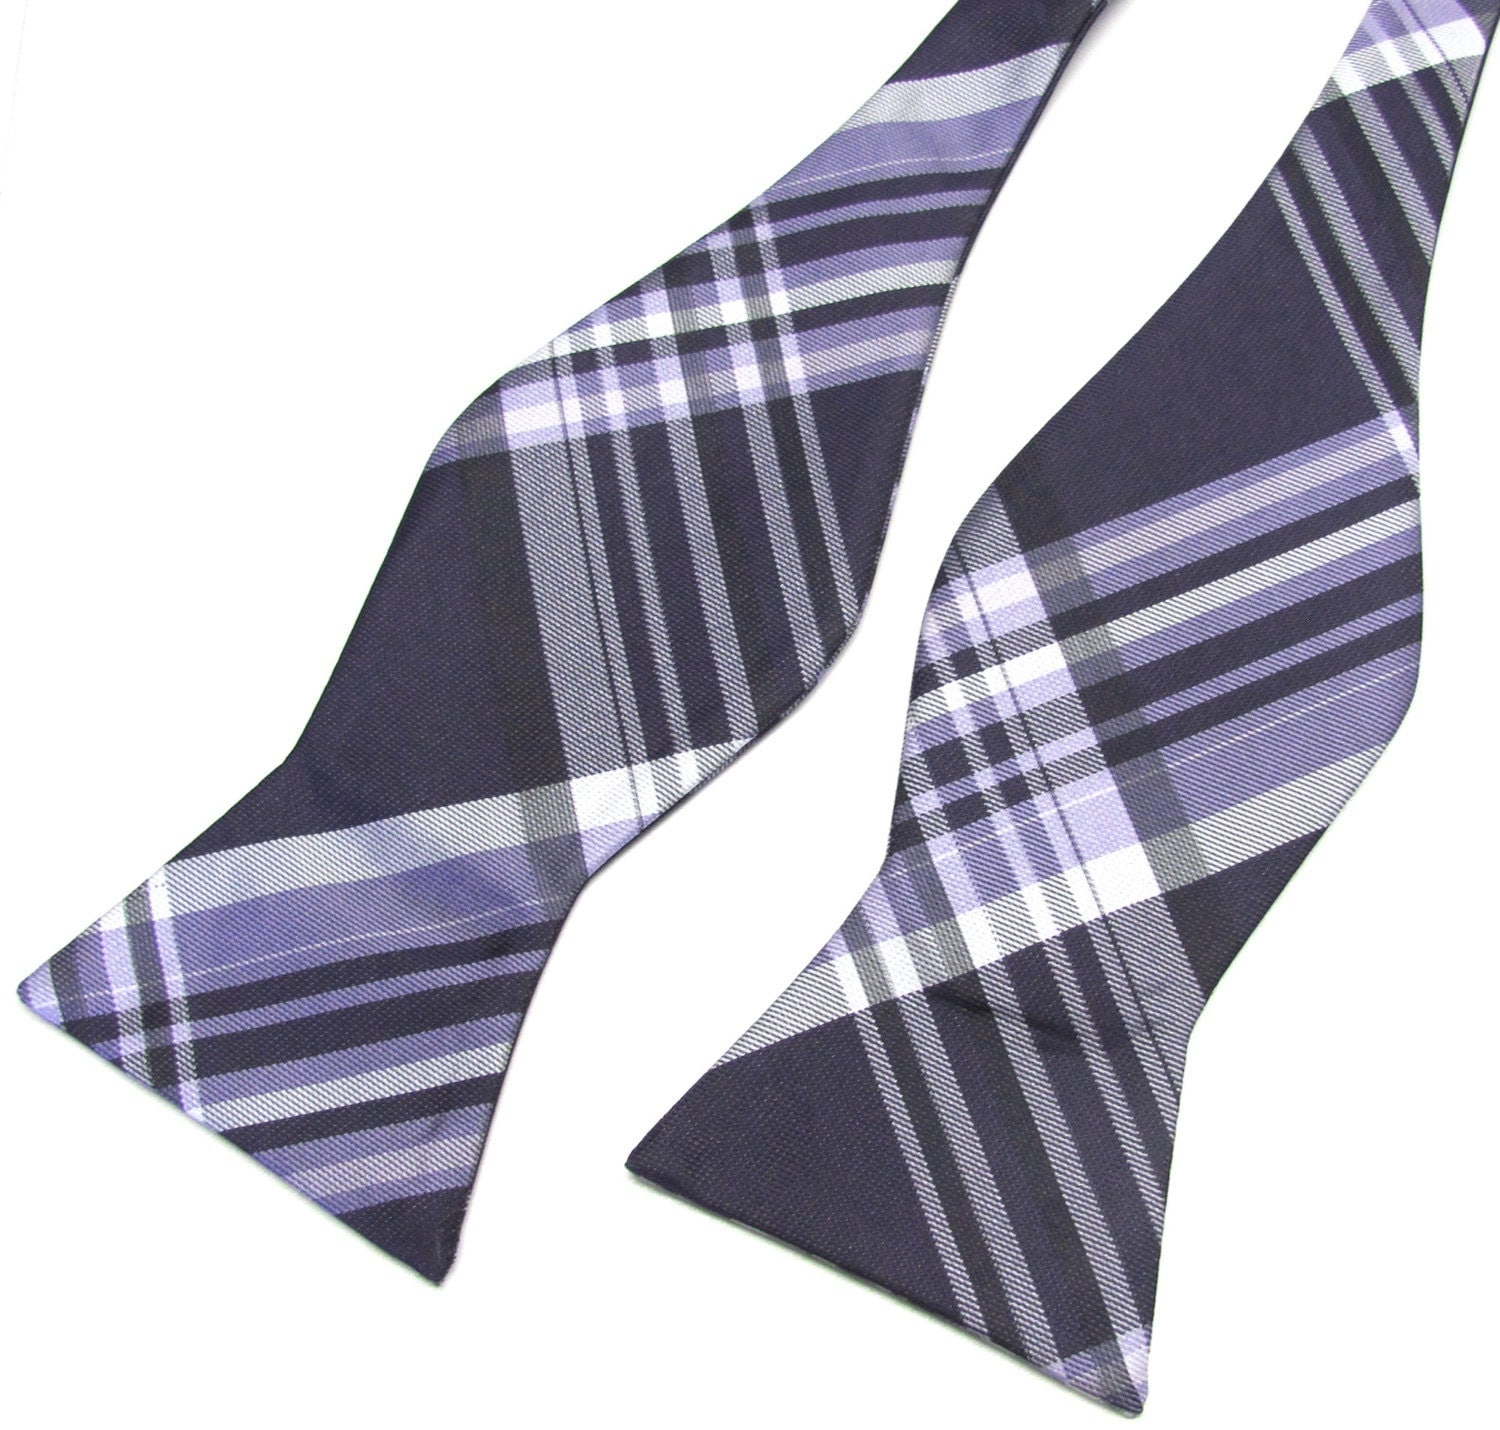 On trend self-tie bow ties from The Tie Bar just $ Free Shipping on most orders. The Tie Bar is the one-stop destination for luxury menswear at unbeatable prices.